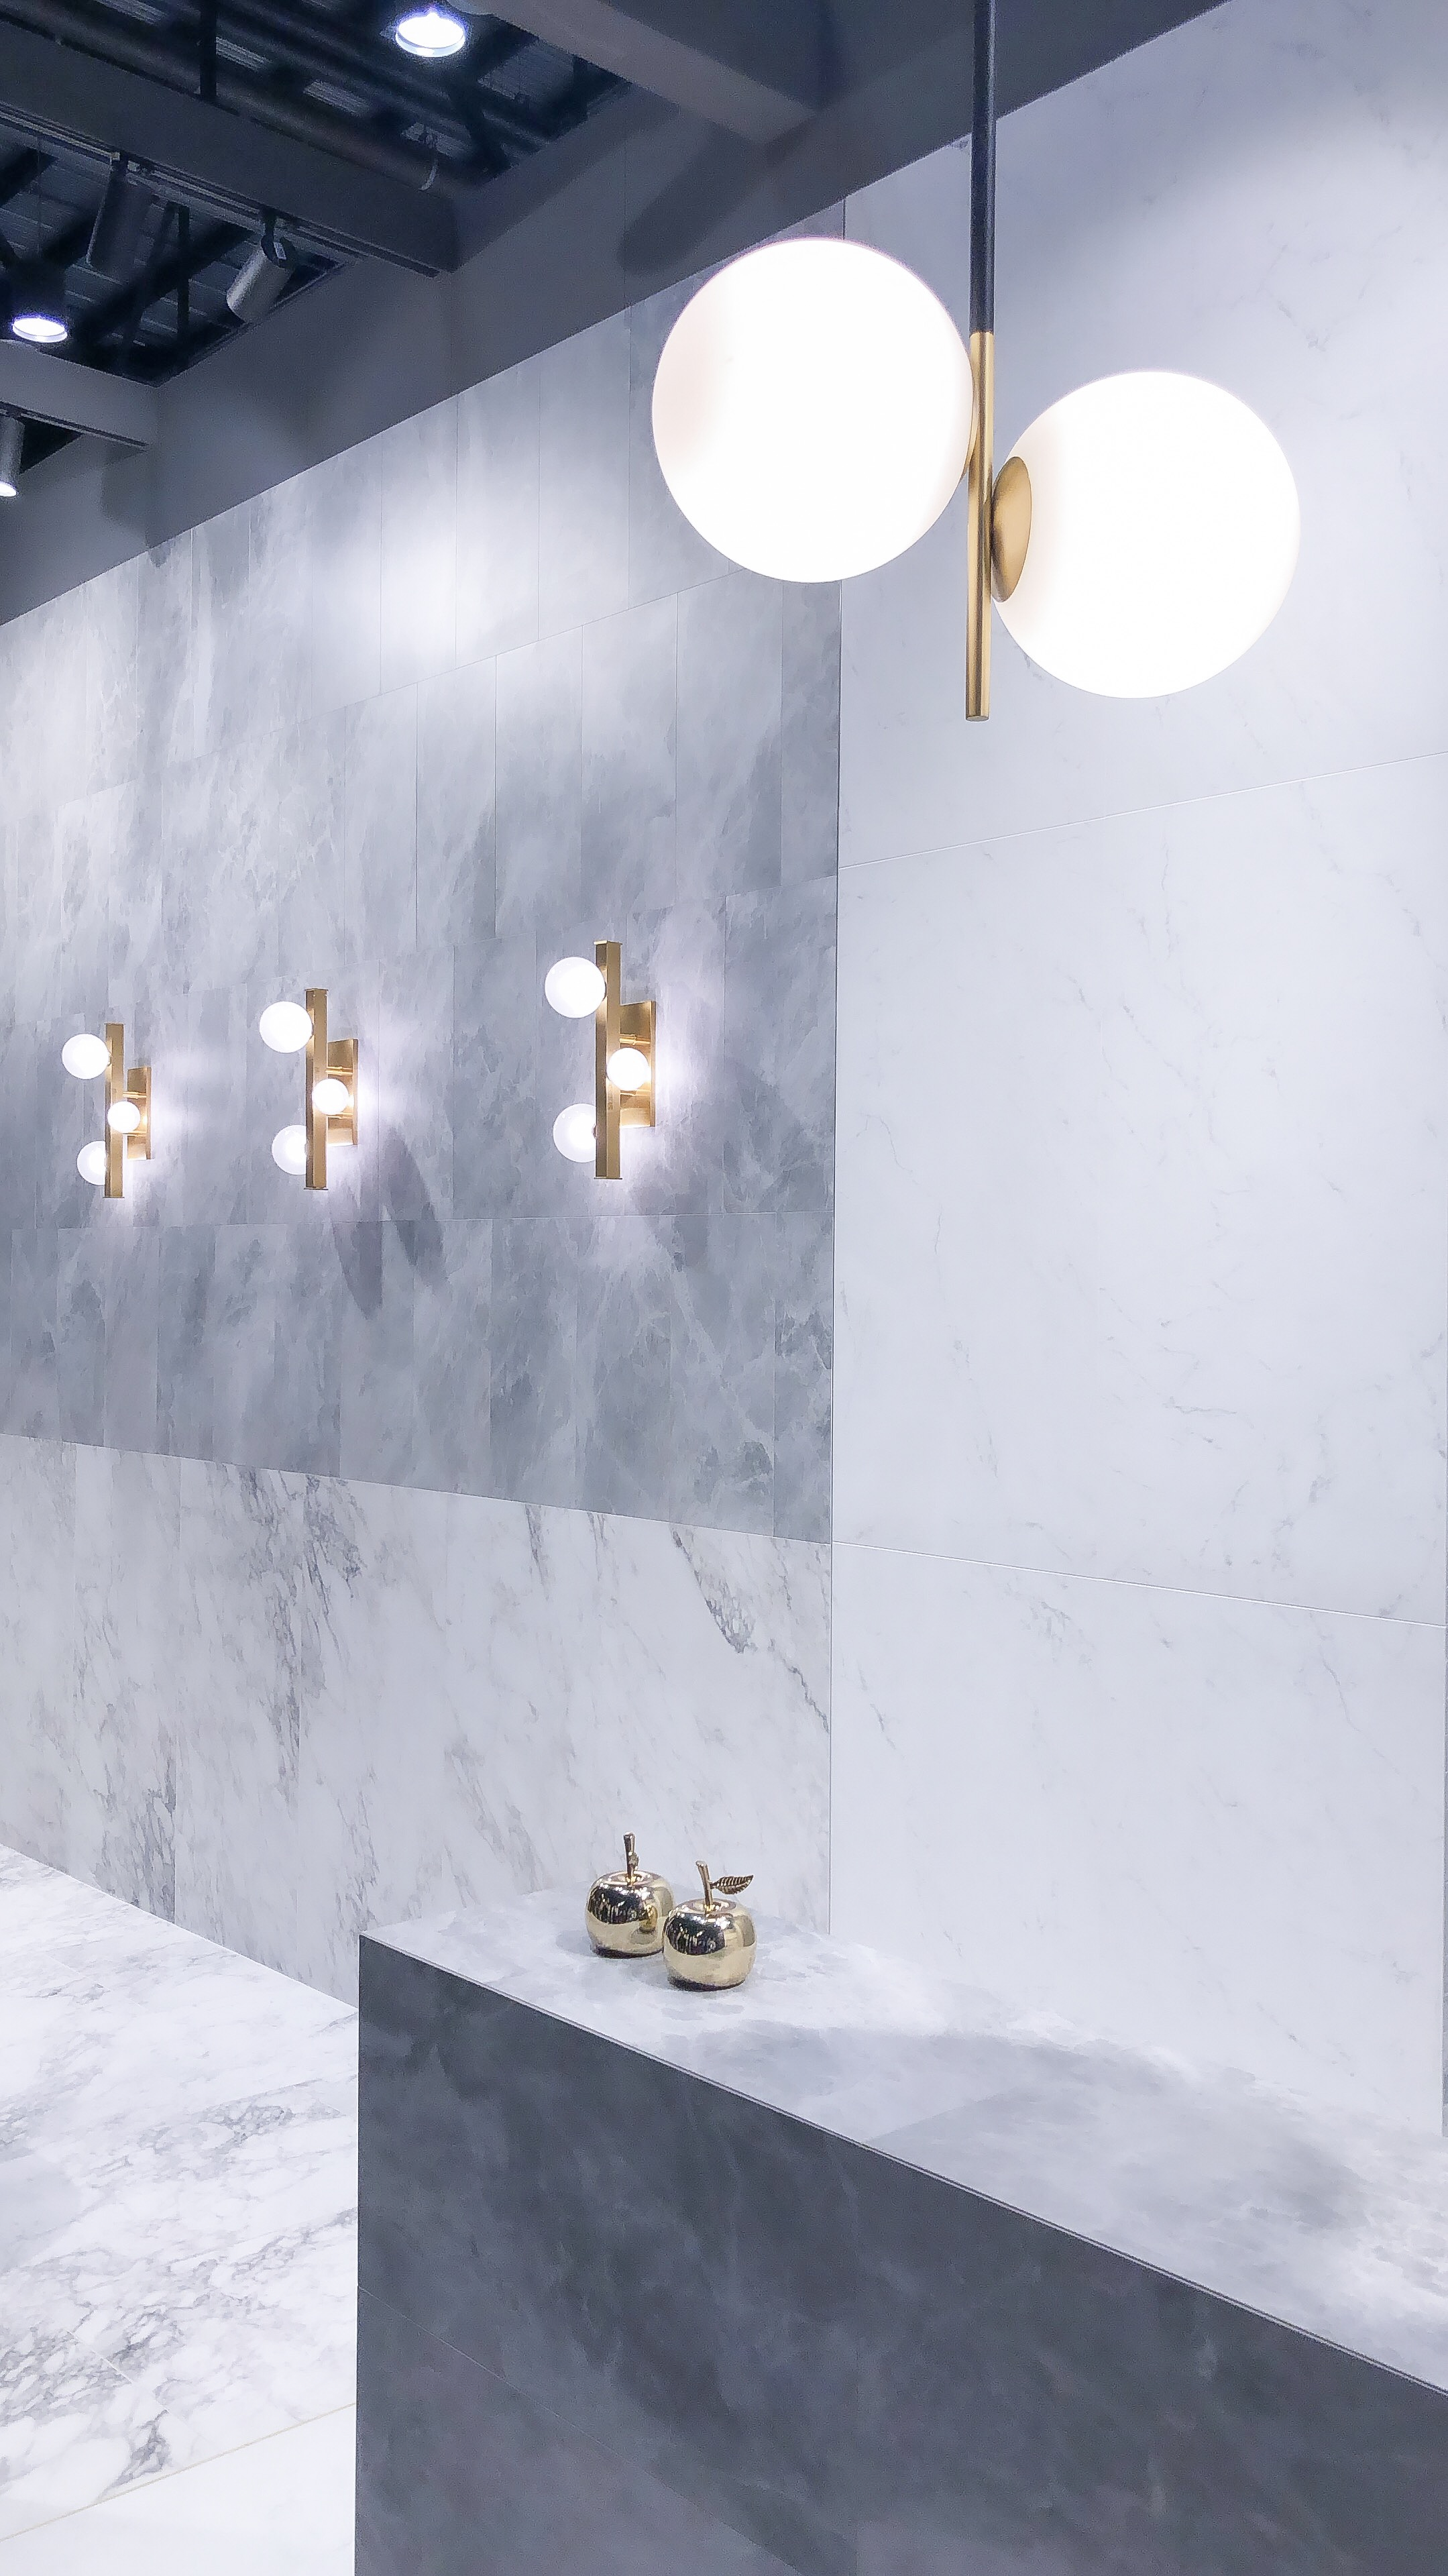 Lots of marble-look tile was shown at Coverings! It's amazing how far porcelain tile has come. The most realistic marble-look tile was porcelain more times than not at the show.